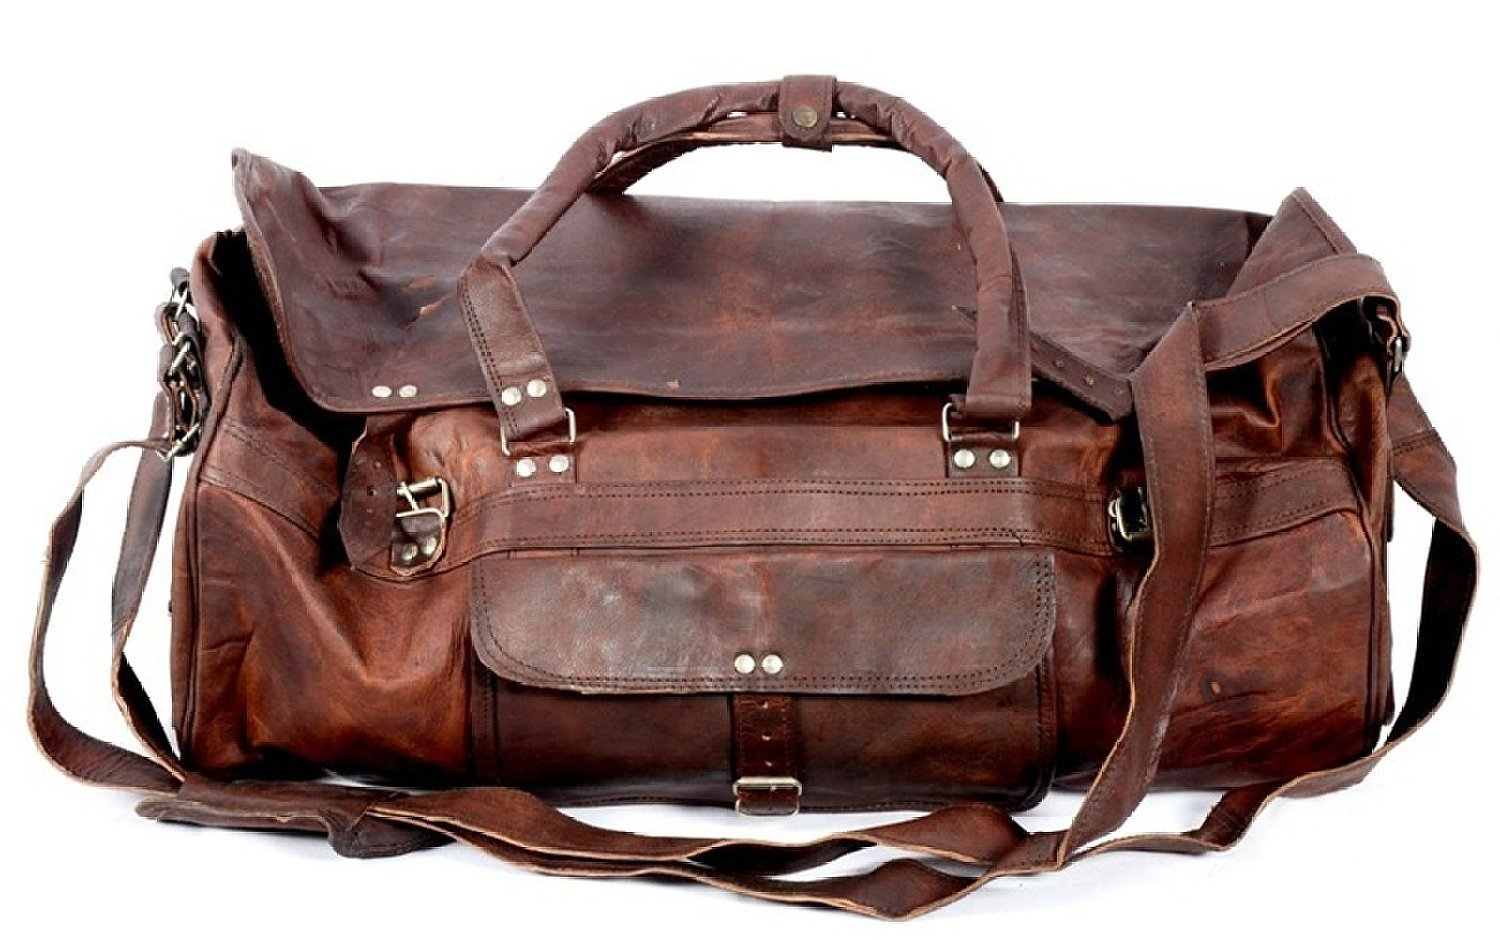 Urban Dezire Large Leather 20 Duffel Travel Gym Overnight Weekend Leather Bag Sports